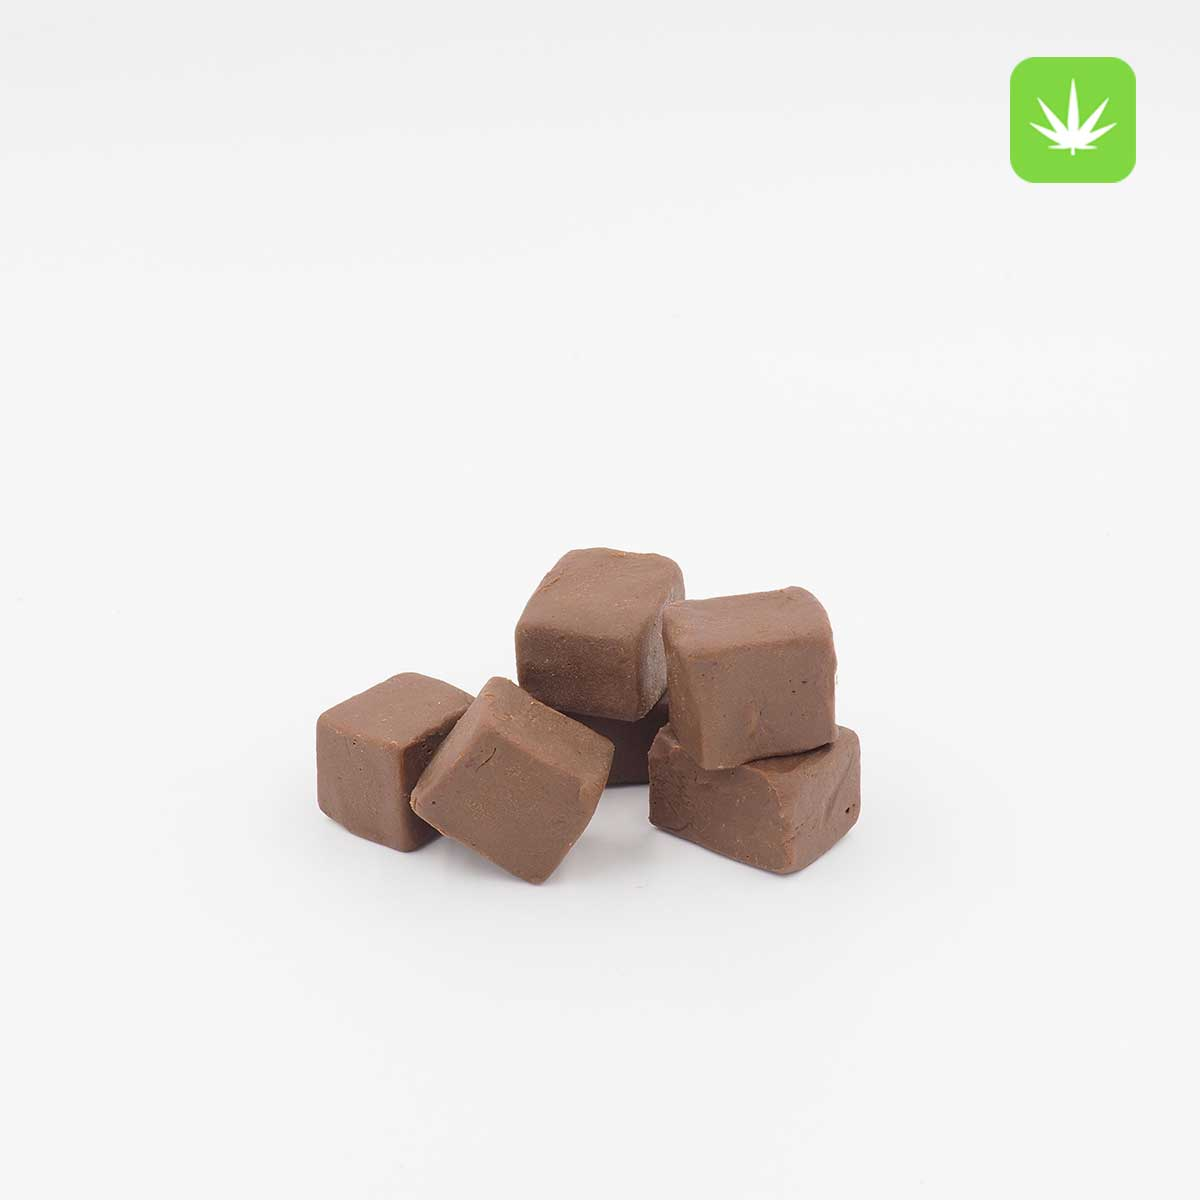 Cannabis Chocolate Fudge Cannabis Avenue